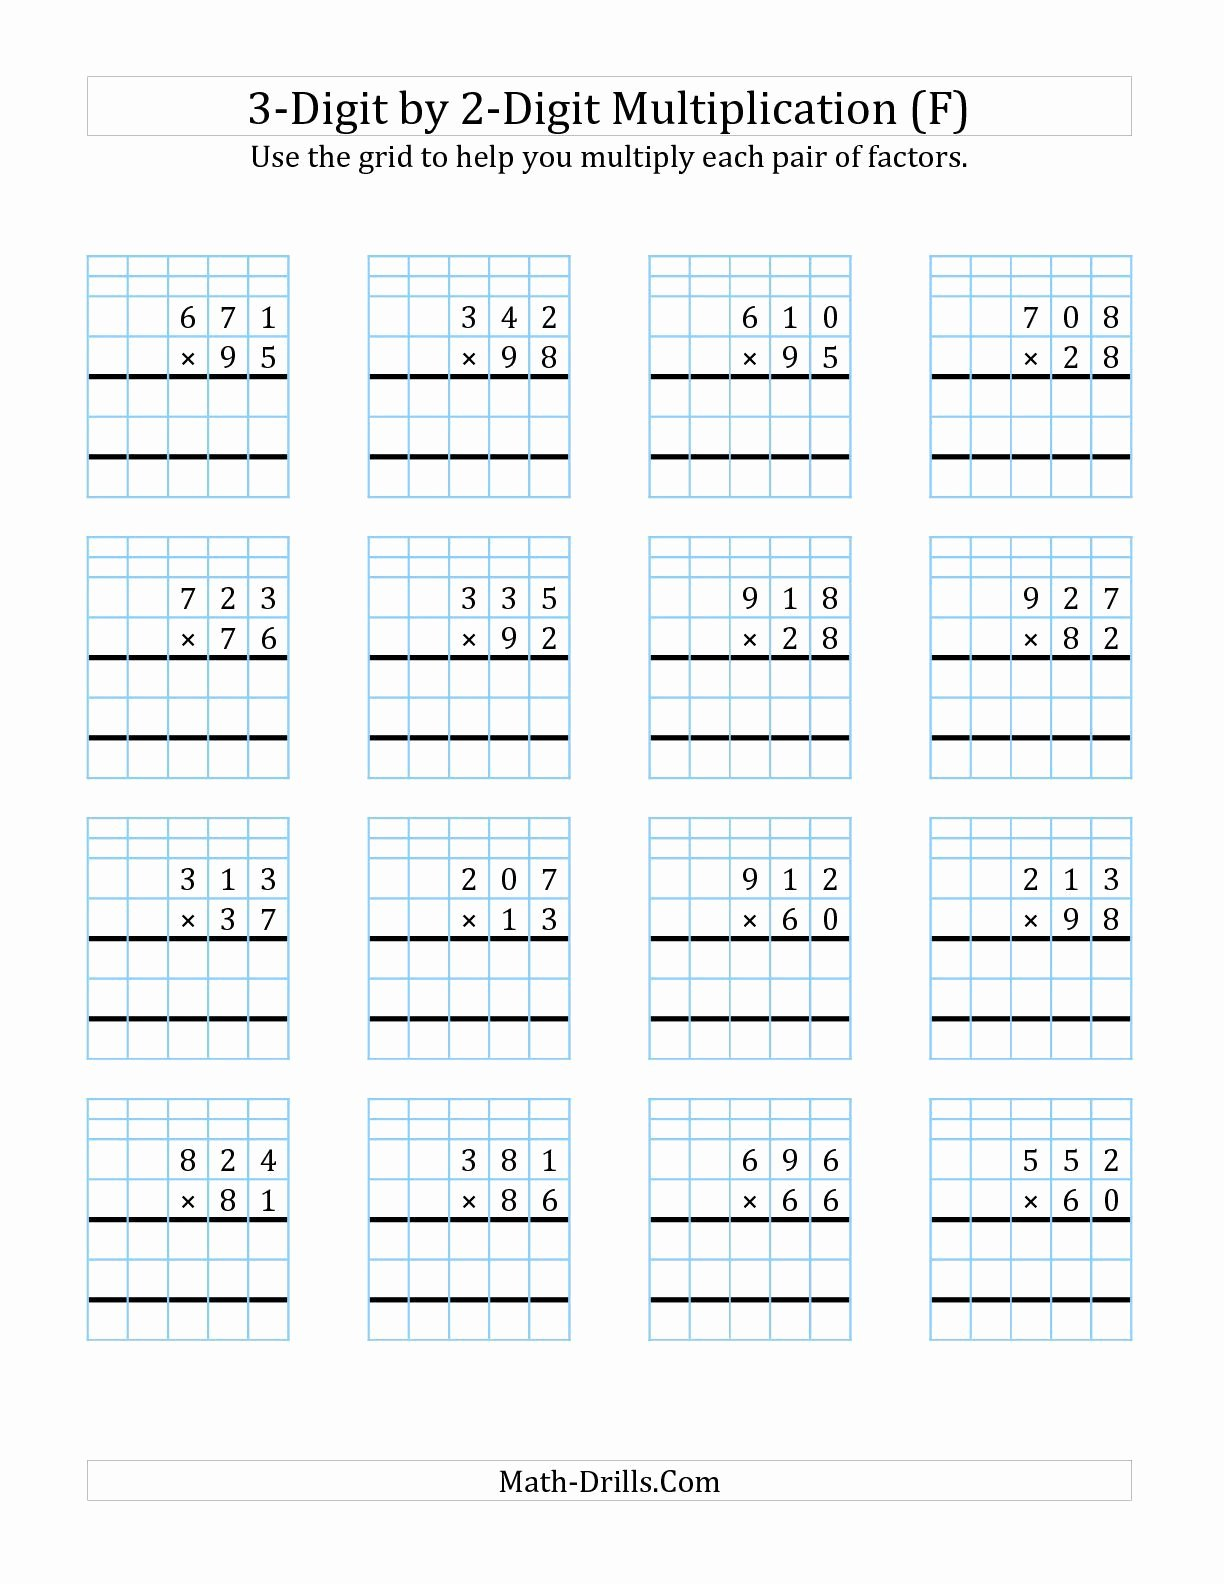 Grid Multiplication Worksheets Best Of the 3 Digit by 2 Digit Multiplication with Grid Support F